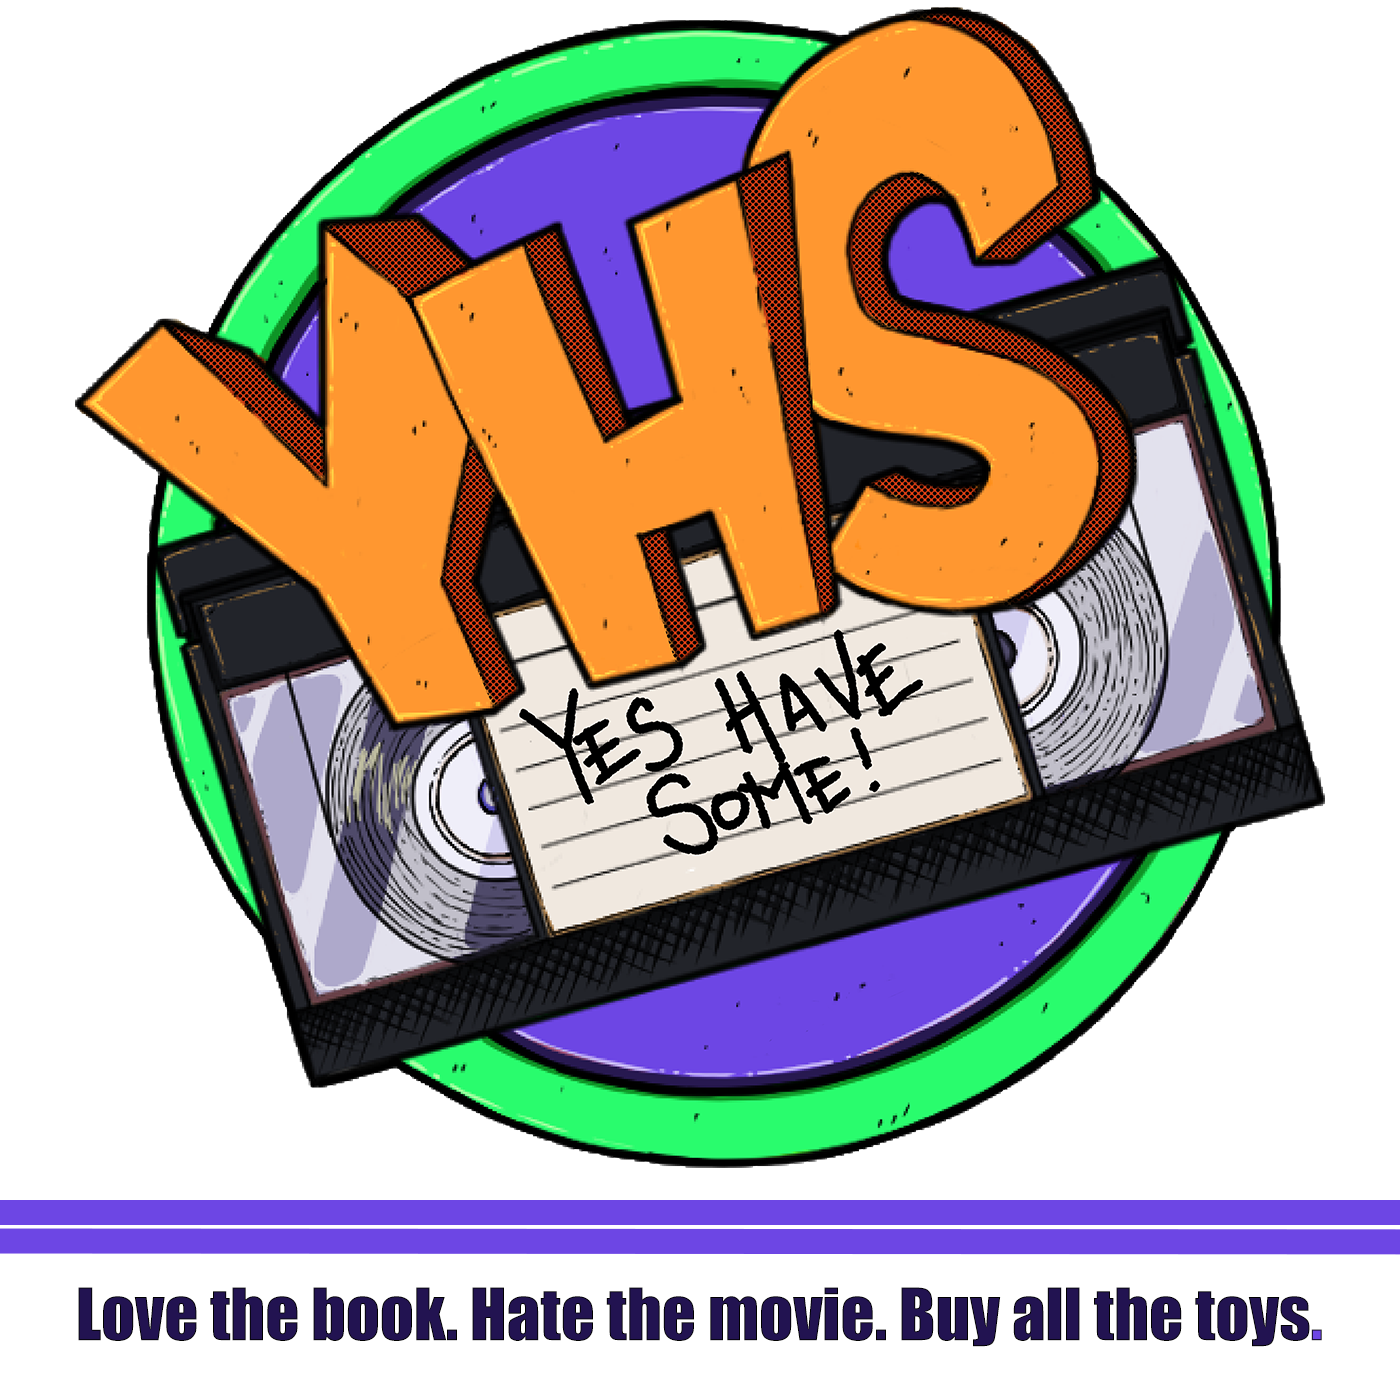 Yes Have Some: Star Wars, Ghostbusters,  Jurassic Park, Toys! logo